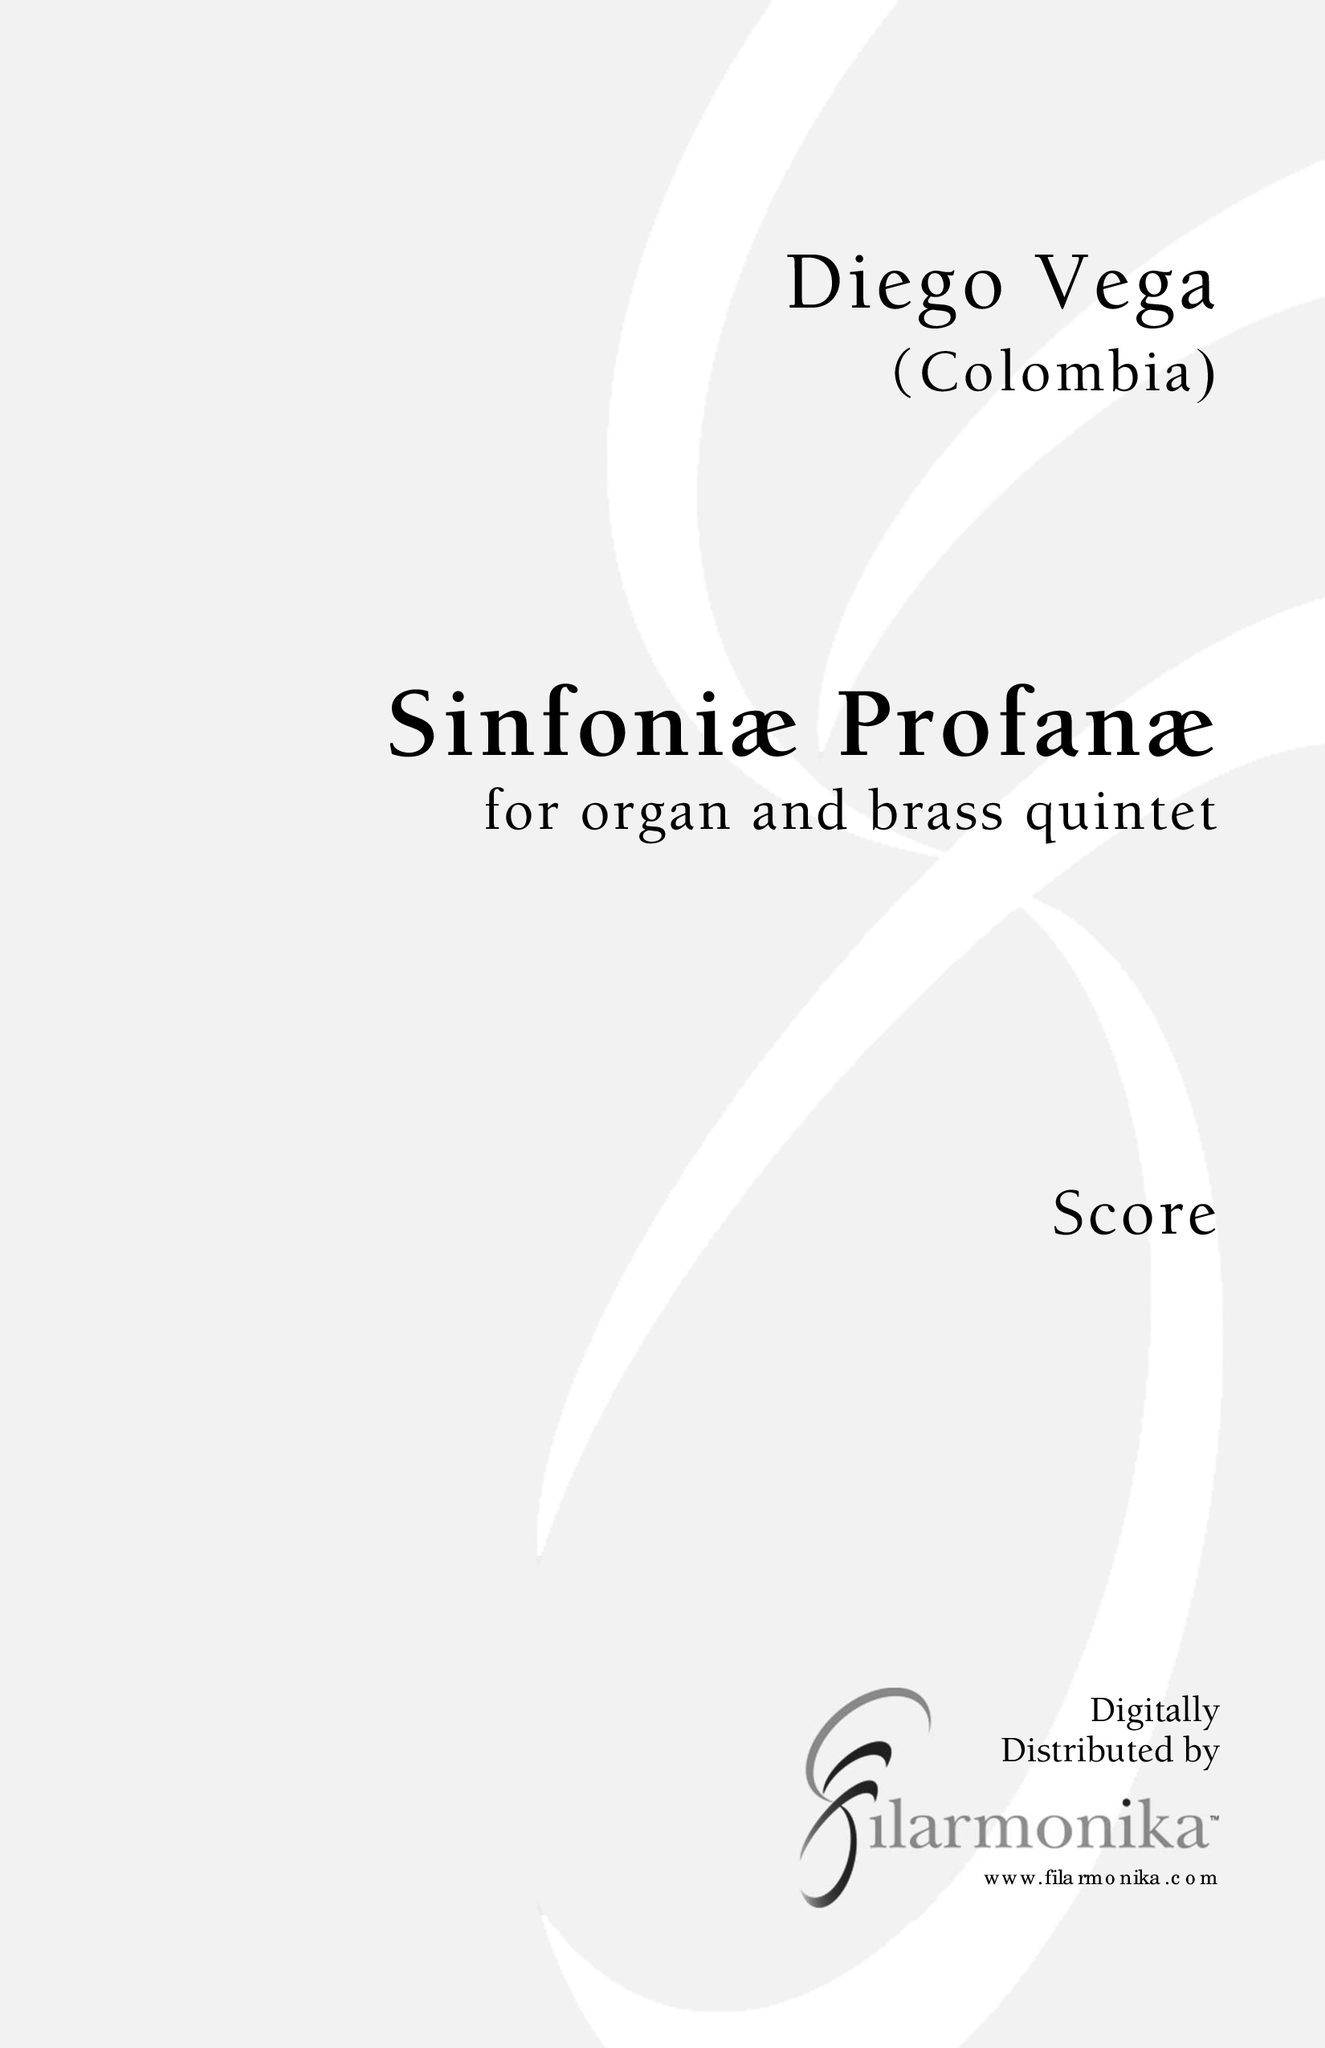 Sinfoniæ Profanæ, for organ and brass quintet